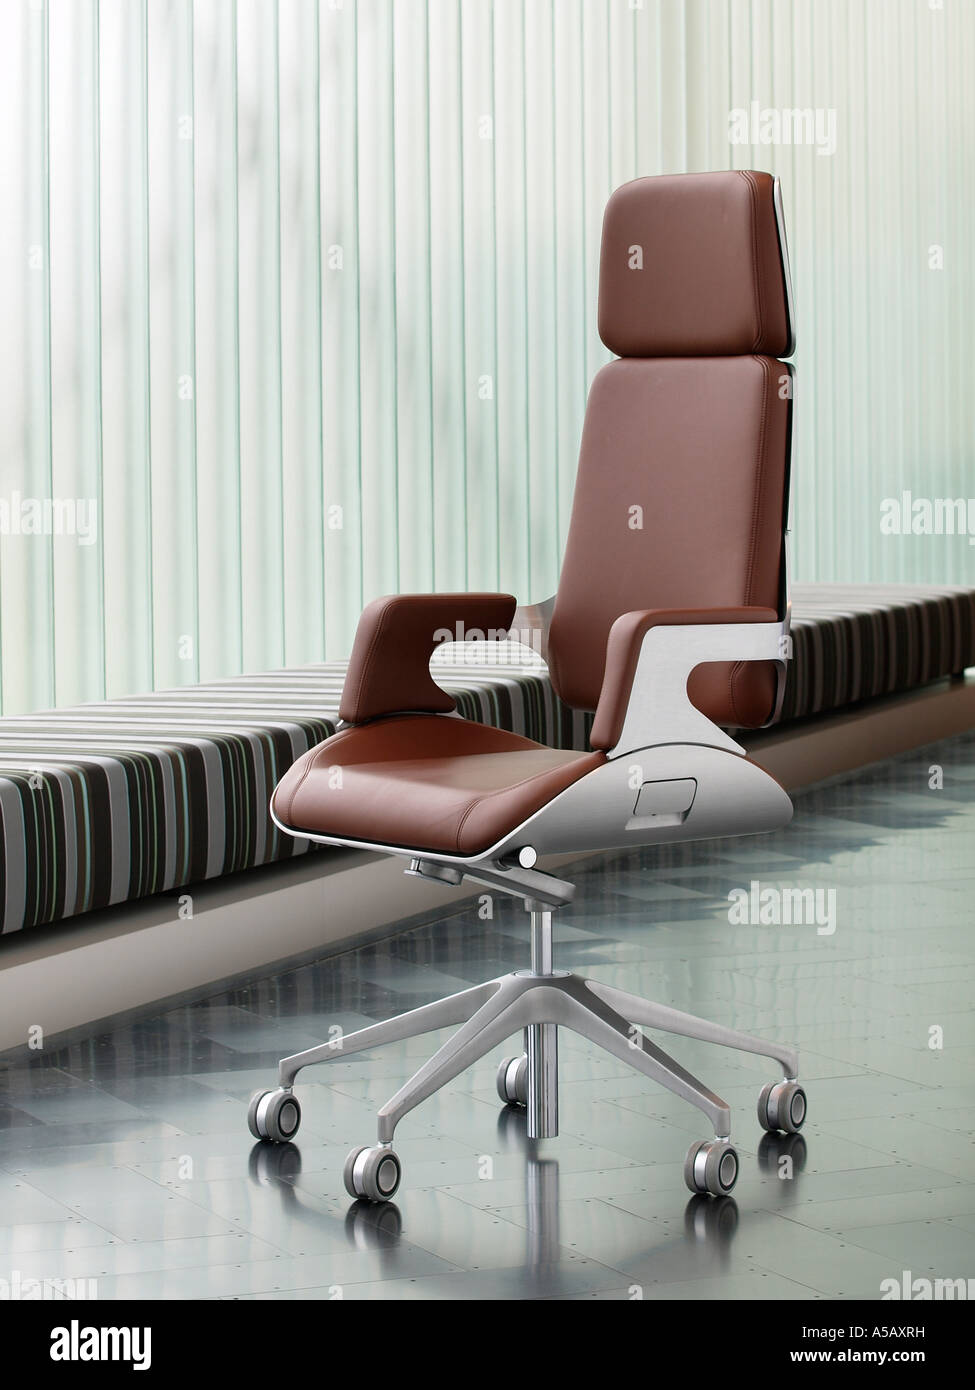 Brushed metal and brown leather luxury office chair on dark steel ...